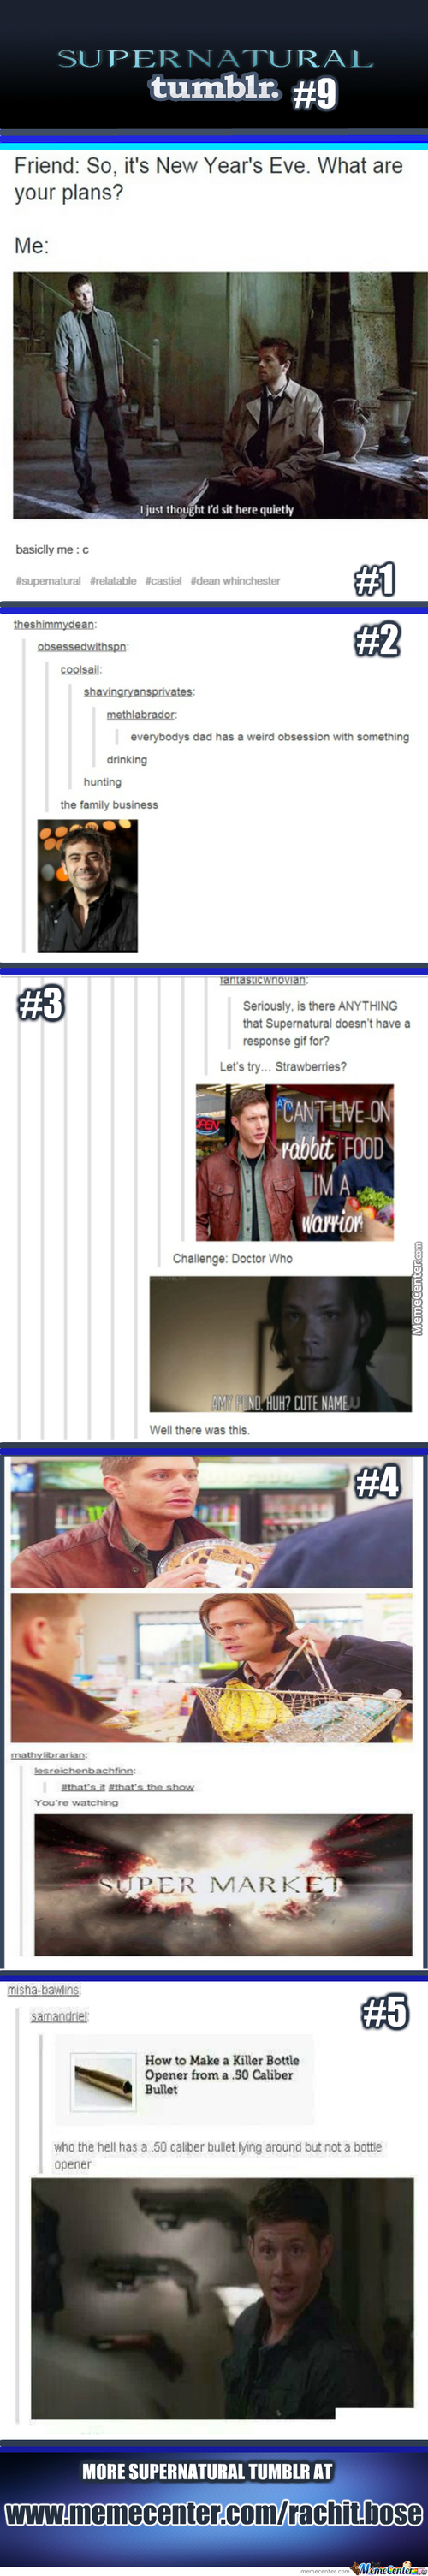 Supernatural Tumblr #9